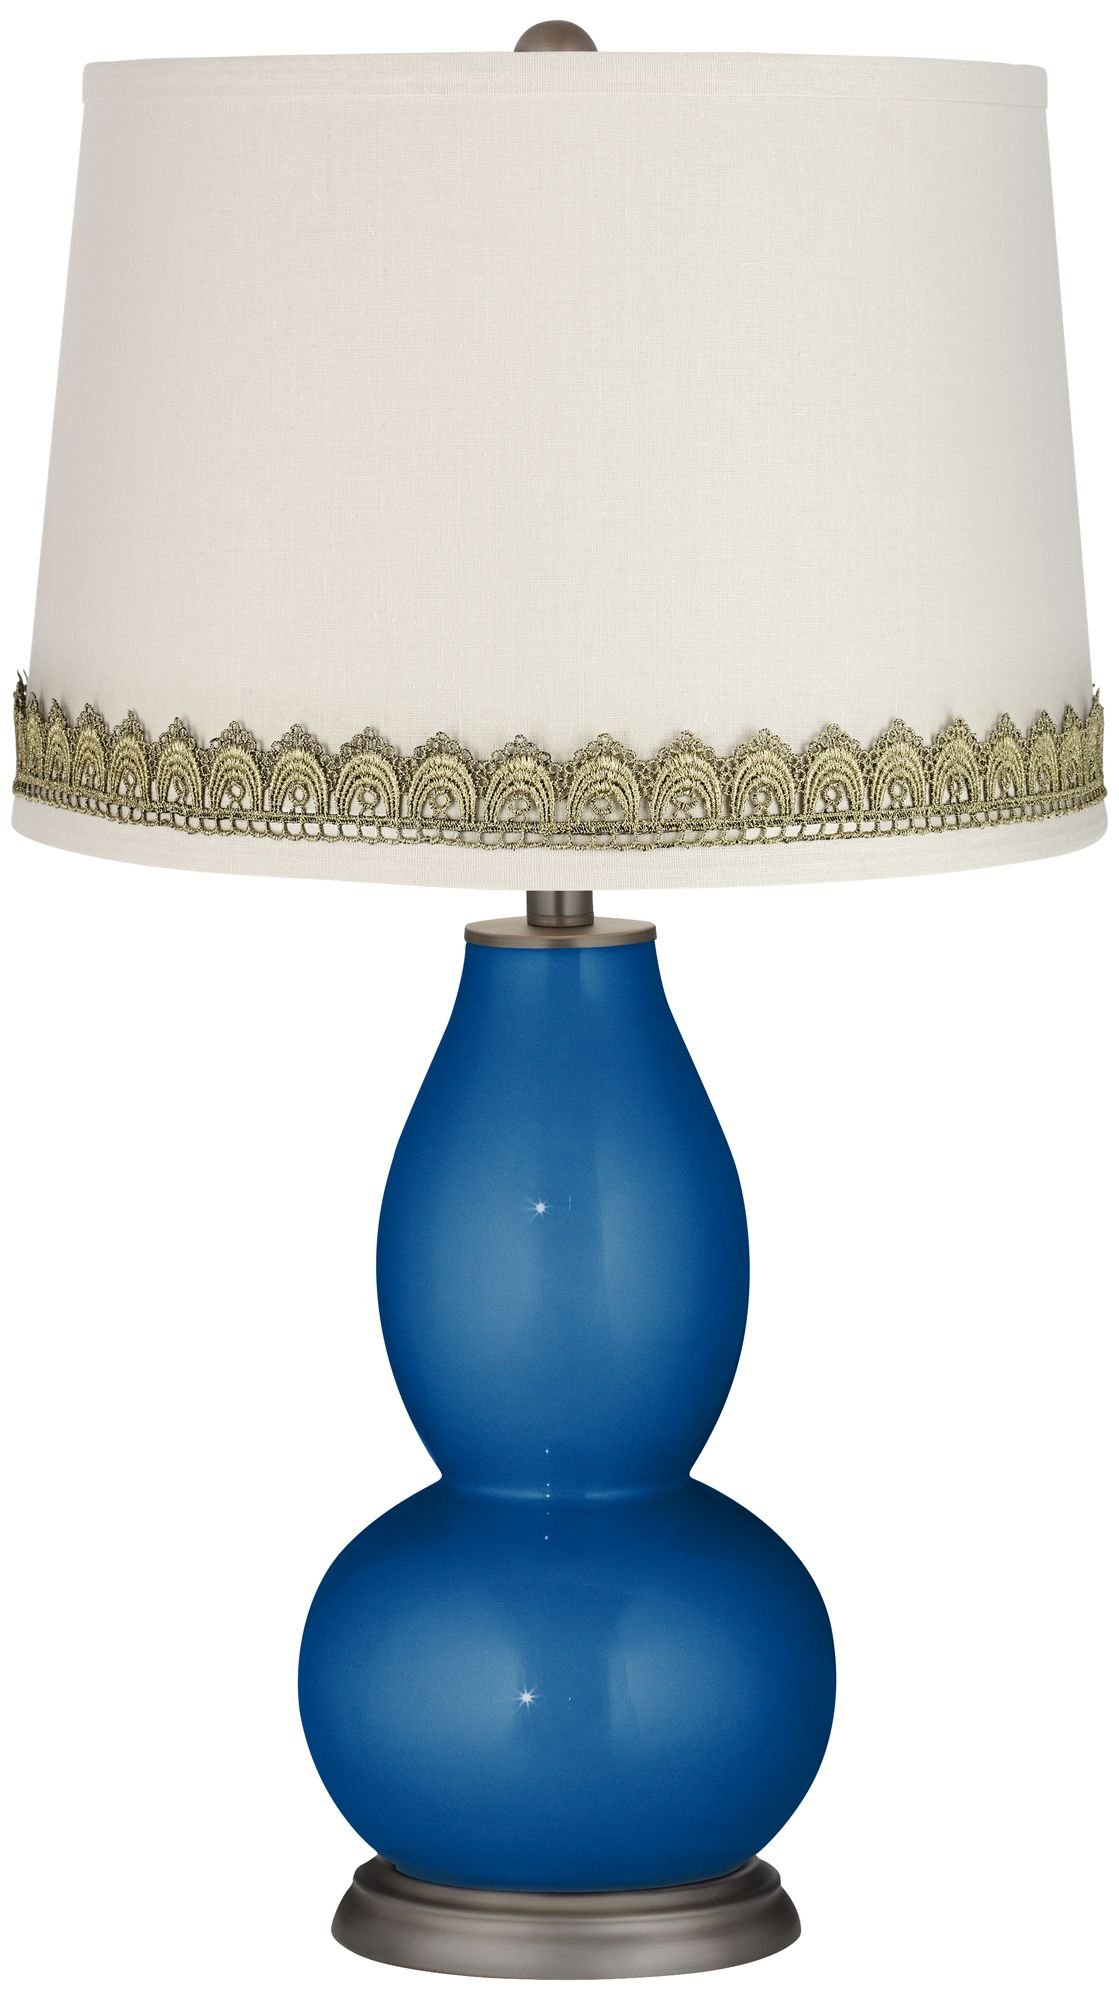 Leds-C4 Ocho Light Online Price Cheap Ocean Metallic Double Gourd Table Lamp with Scallop Lace Trim